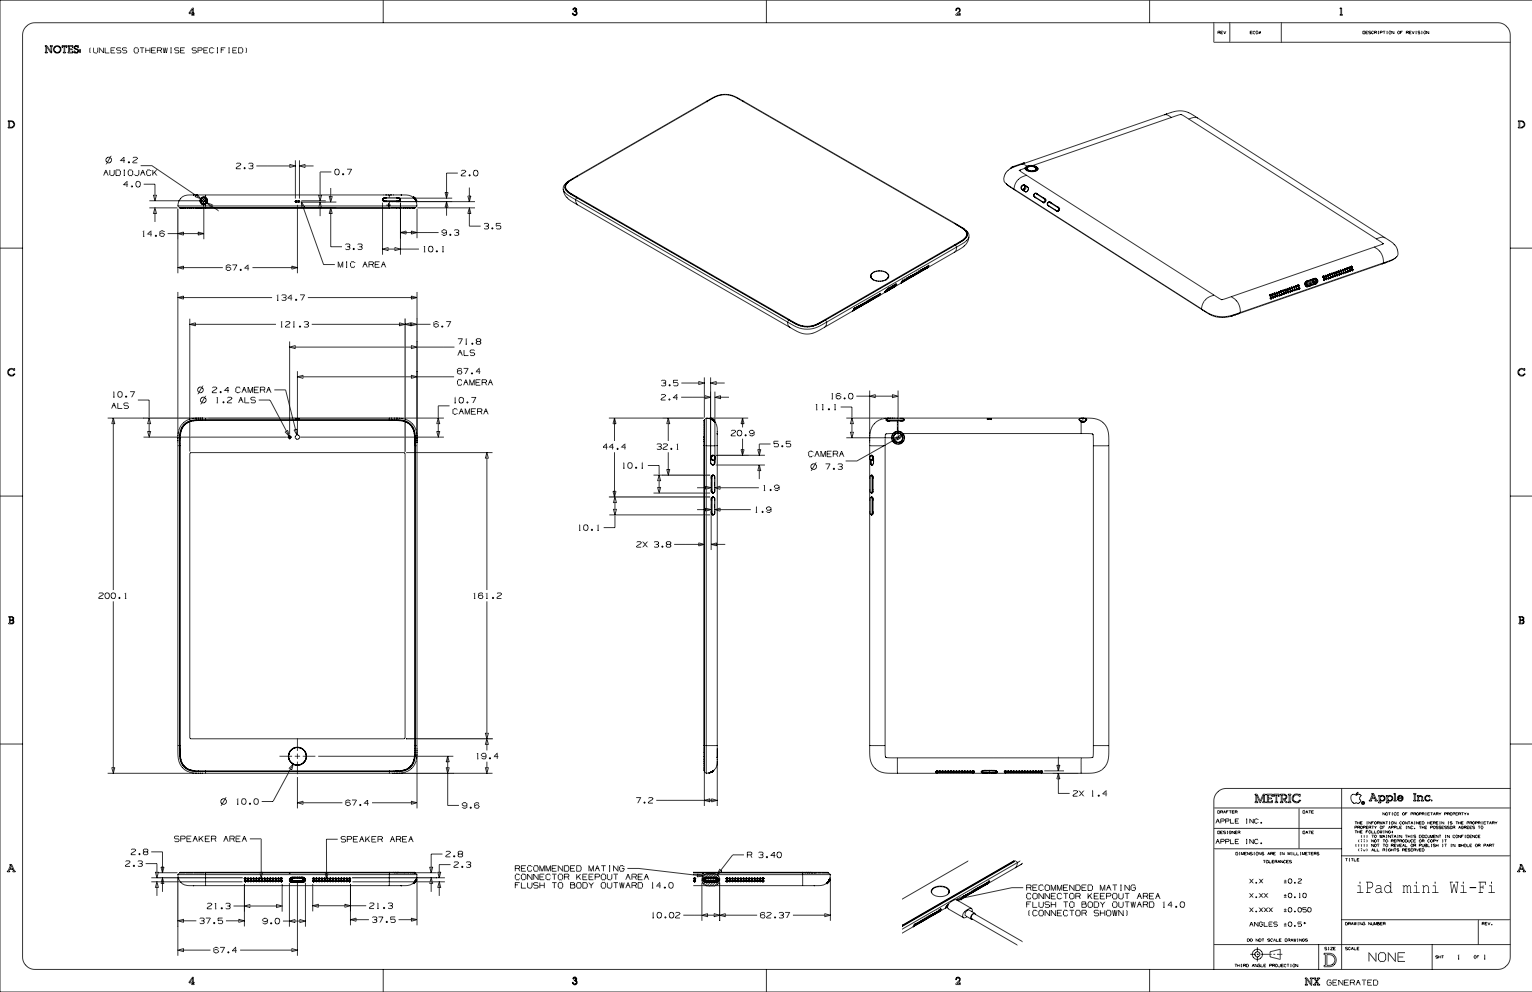 Ipad Mini 3 Schematic Diagram Trusted Wiring Diagrams Circuit Full And Fourth Generation Schematics Blueprints Now Kindle Fire